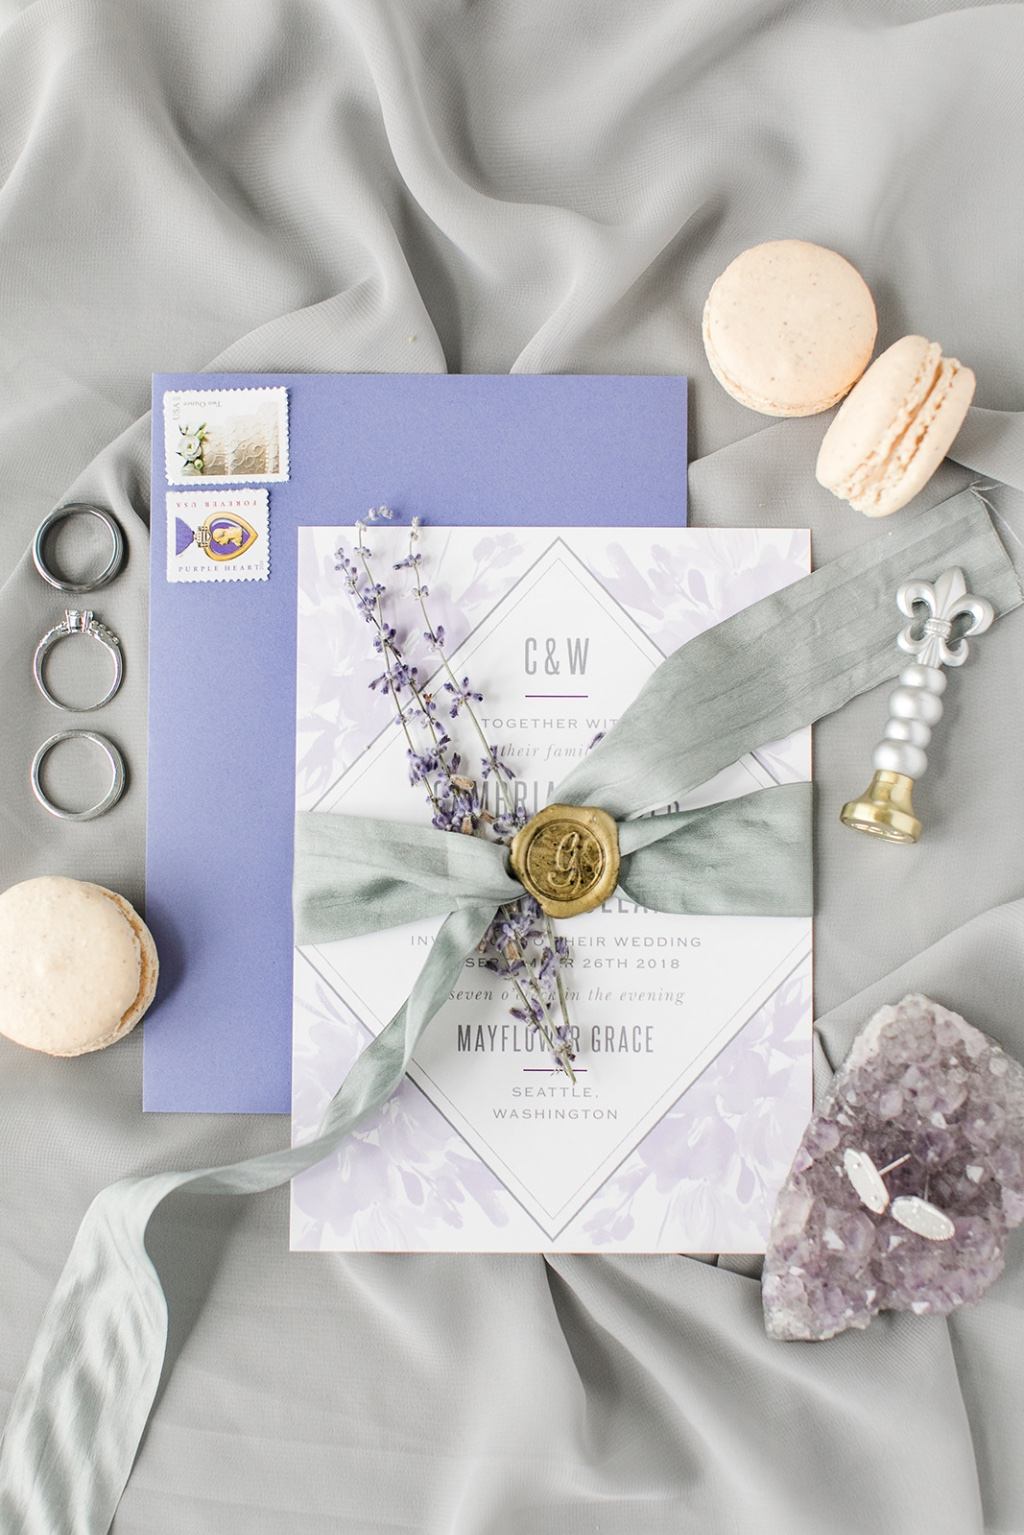 A perfectly paired invitation with an accent envelope will take your wedding invitation from standard to standout!